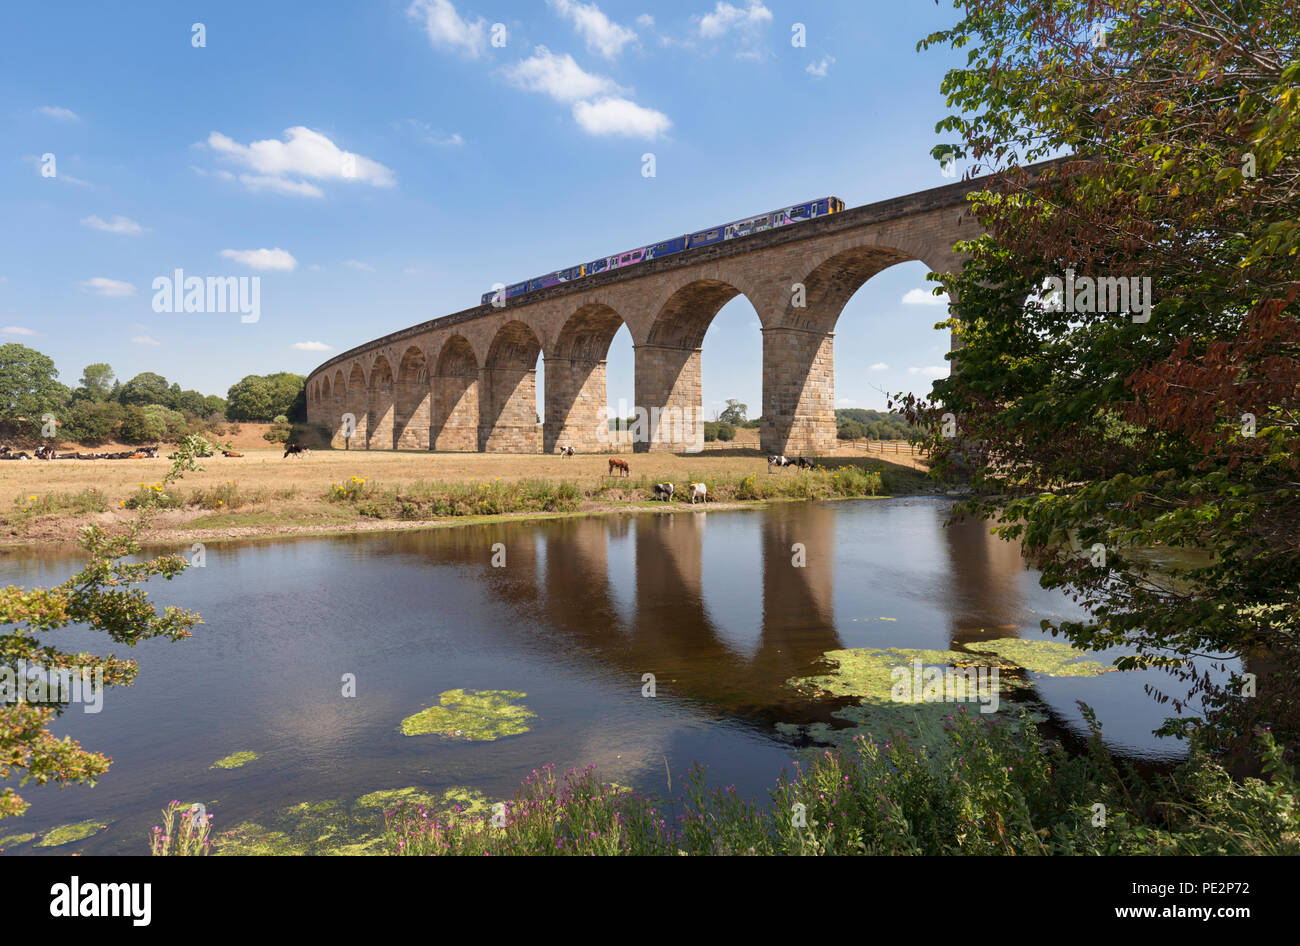 Northern rail class 150 sprinter +  class 142 pacer trains crossing the curved Wharfedale viaduct over the River Wharf on the Leeds to Harrogate line - Stock Image